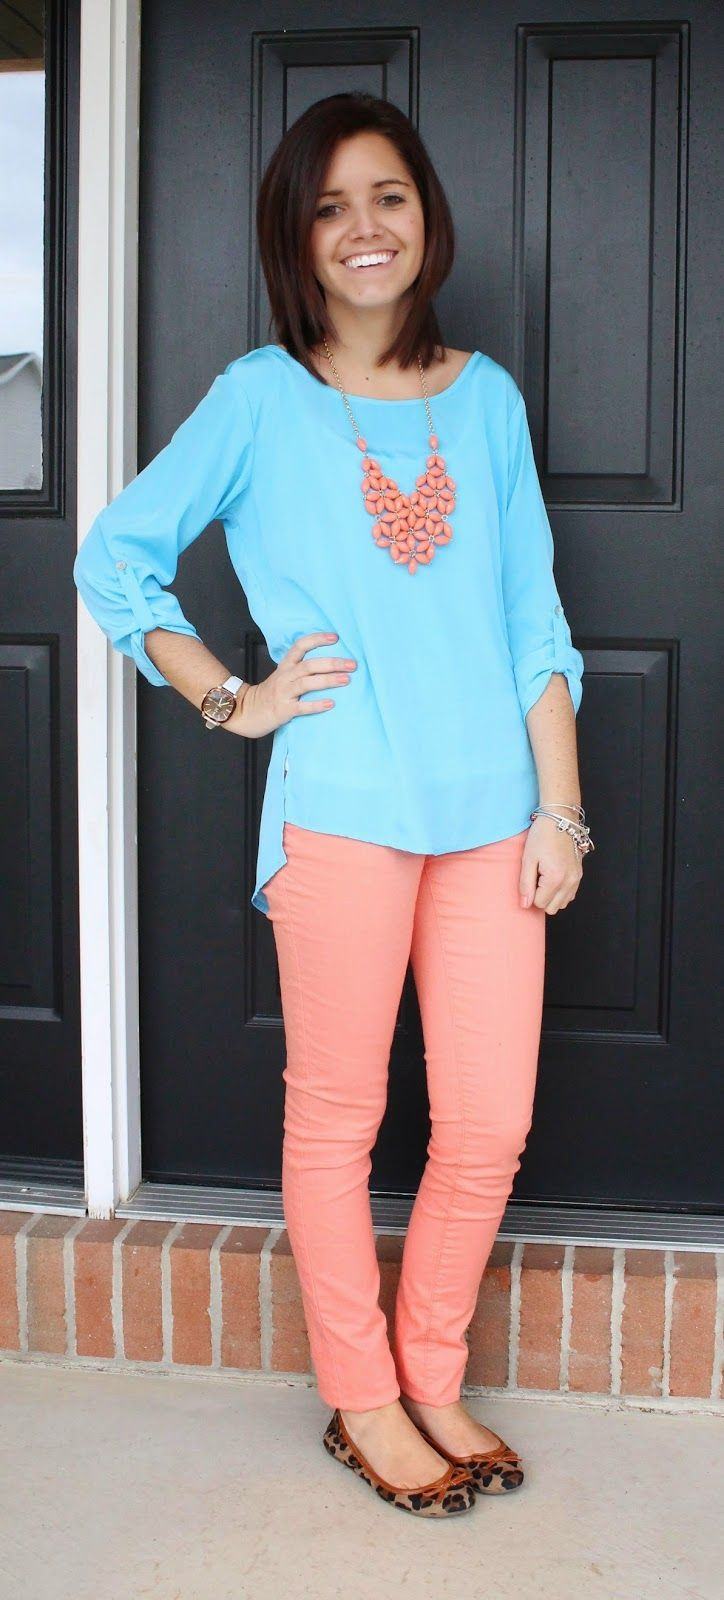 Classy In The Classroom: Bright Colors!